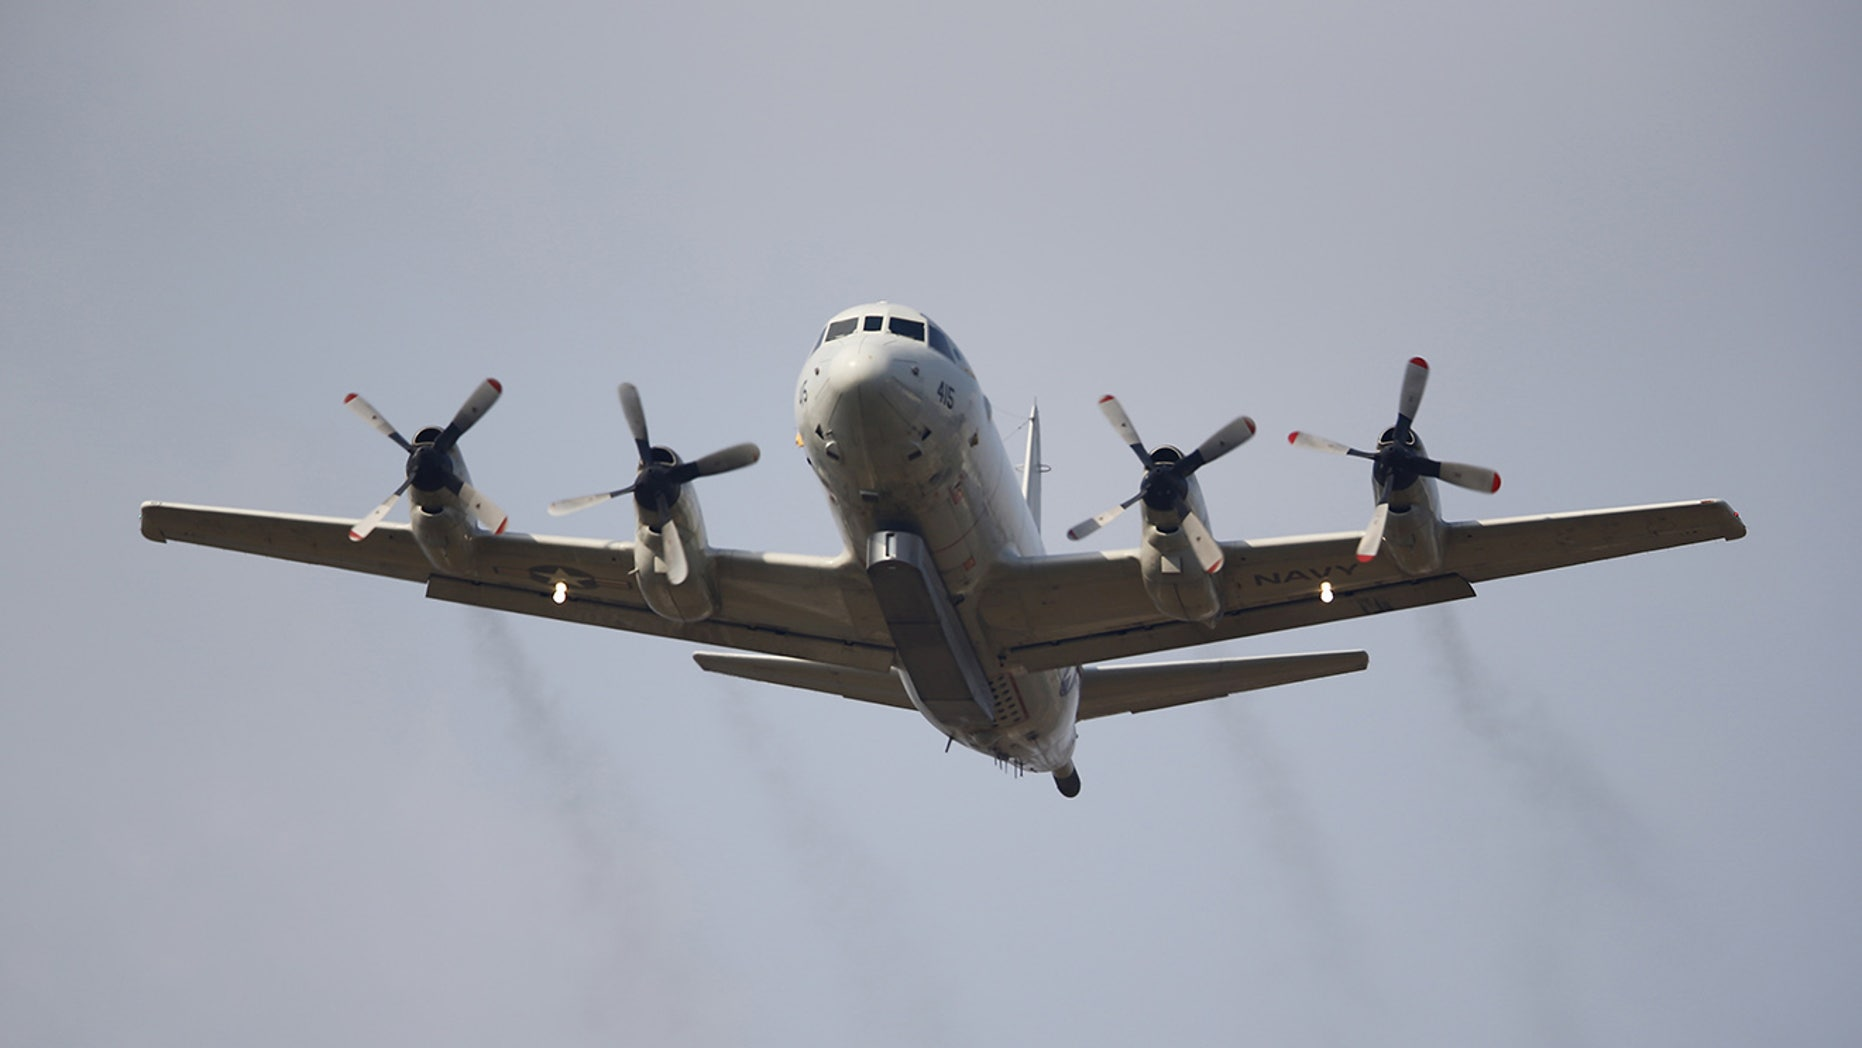 A US Navy P-3 aircraft in 2015. Chinese fighter jets buzzed a P-3 earlier this week, a US defense official said.